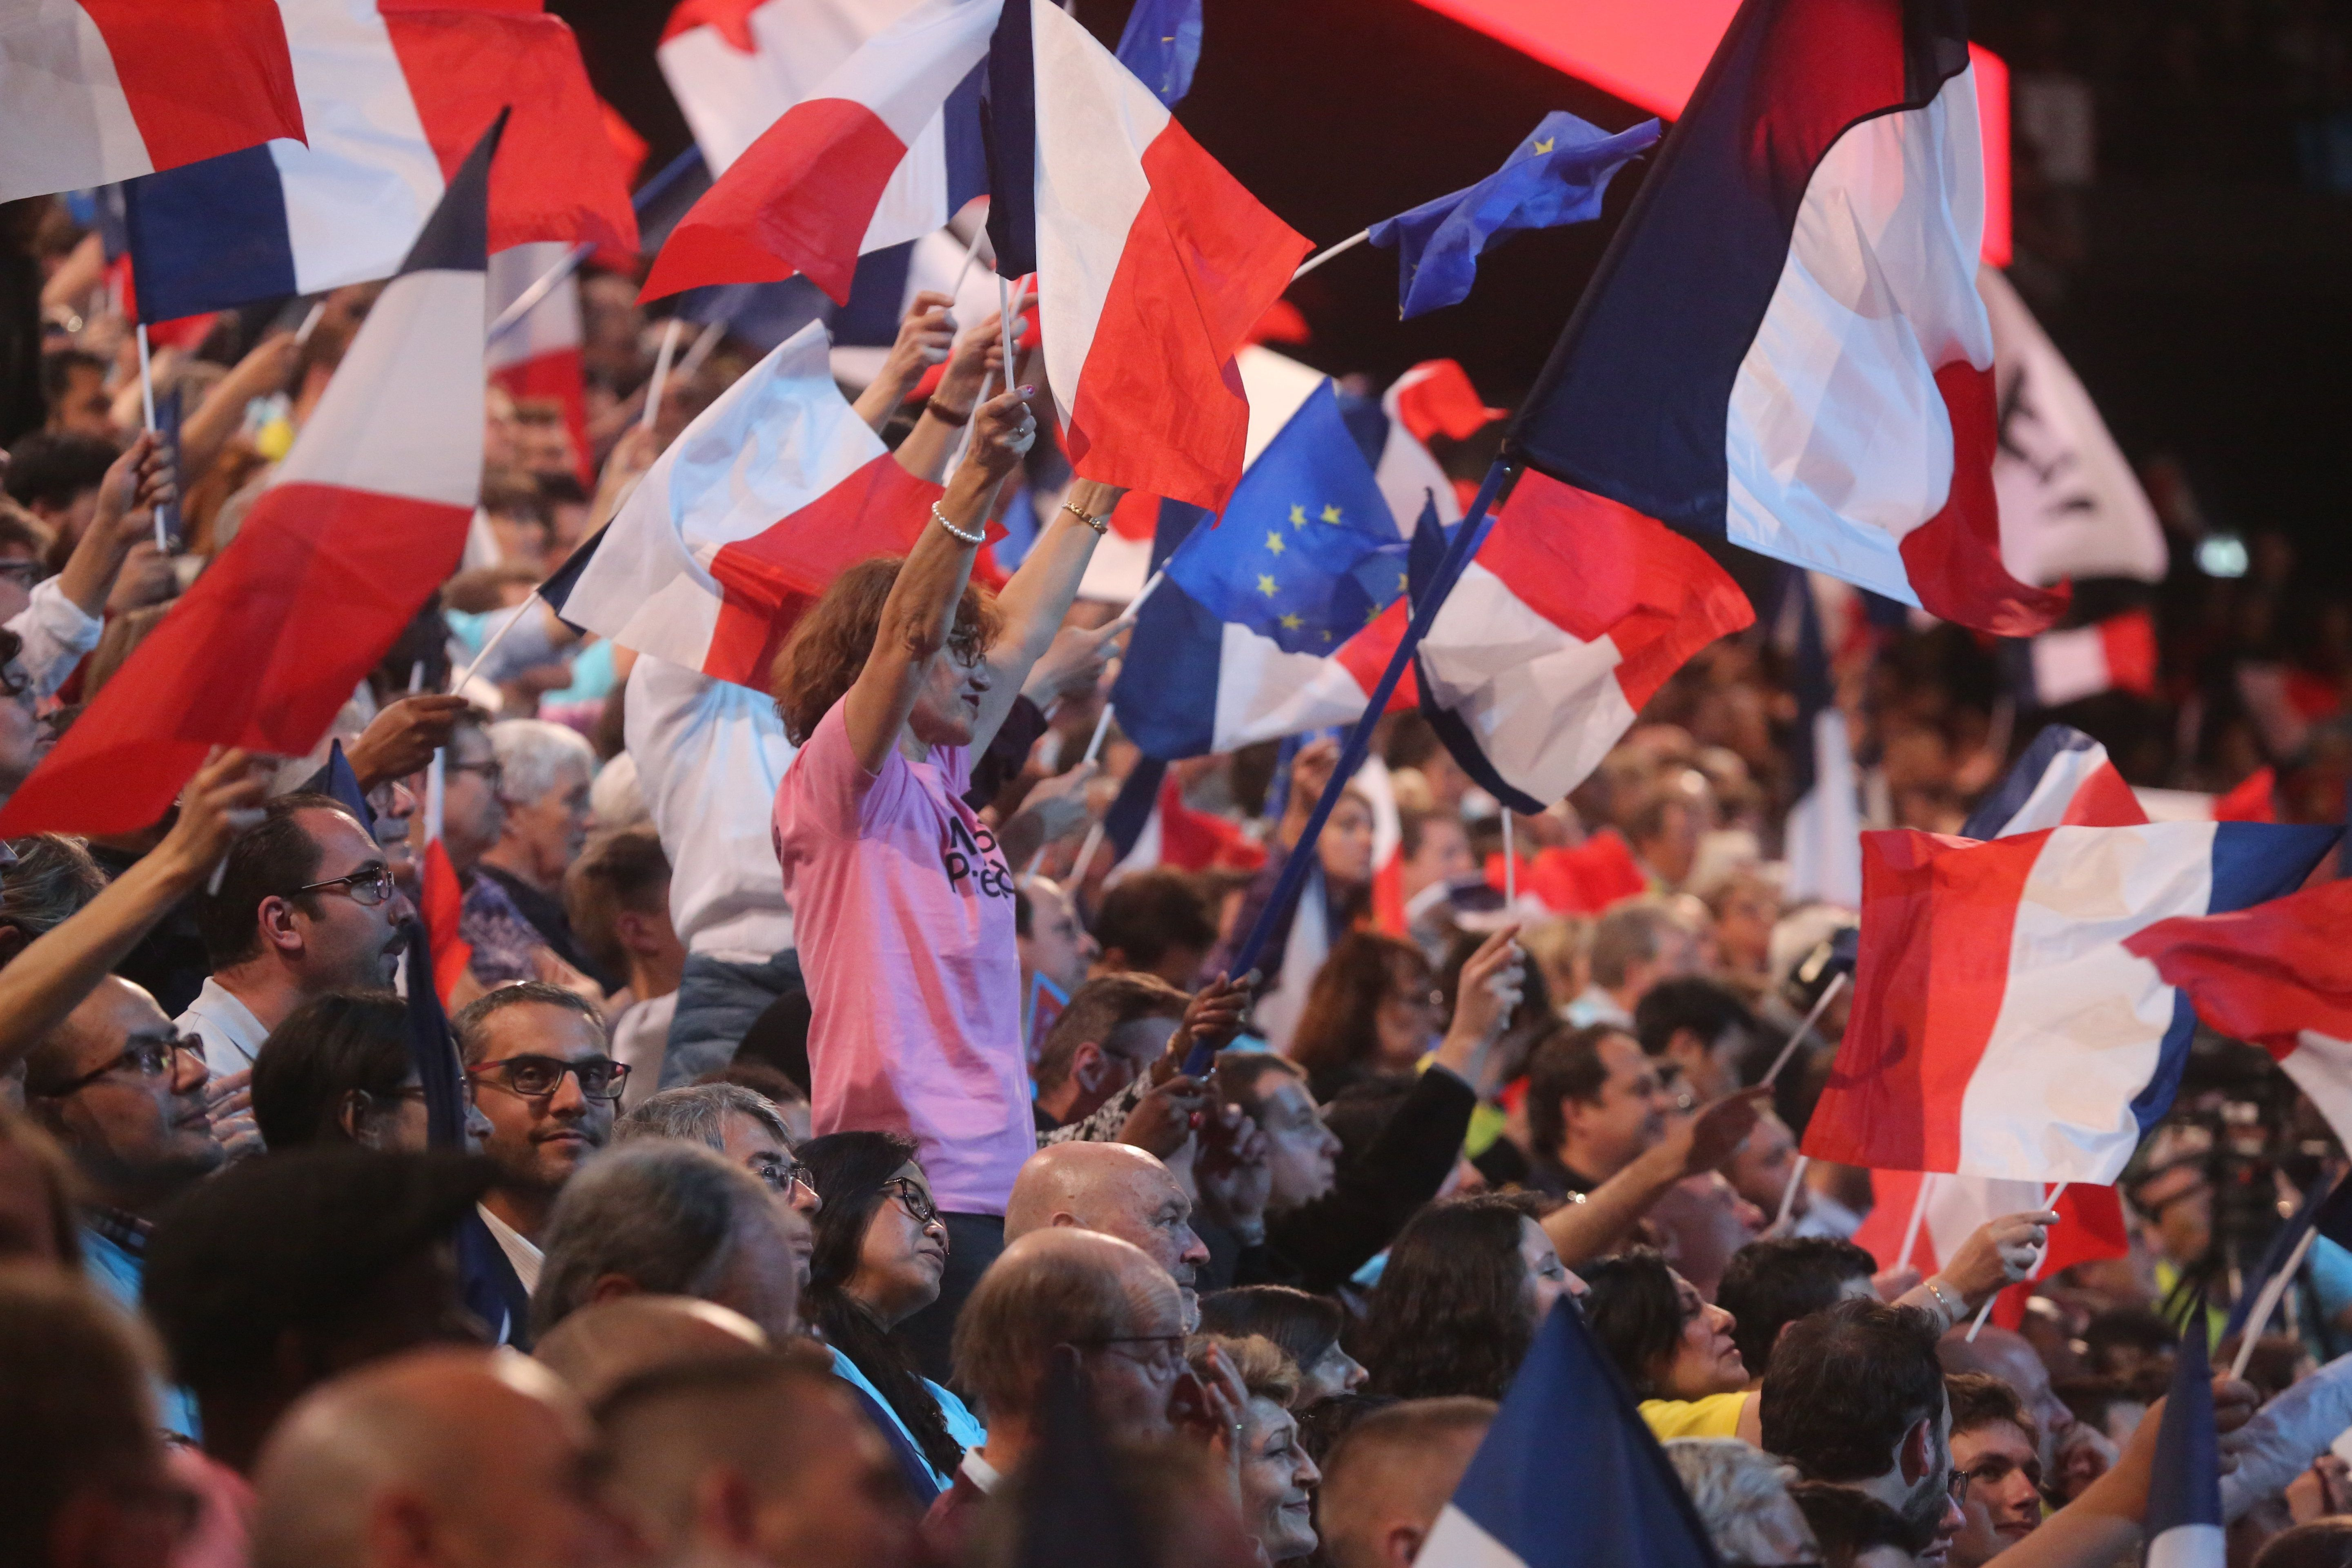 PARIS, FRANCE - APRIL 17: People attend French presidential candidate Emmanuel Macron's campaign rally at AccorHotels Arena on April 17, 2017 in Paris, France. (Photo by Owen Franken/Corbis via Getty Images)